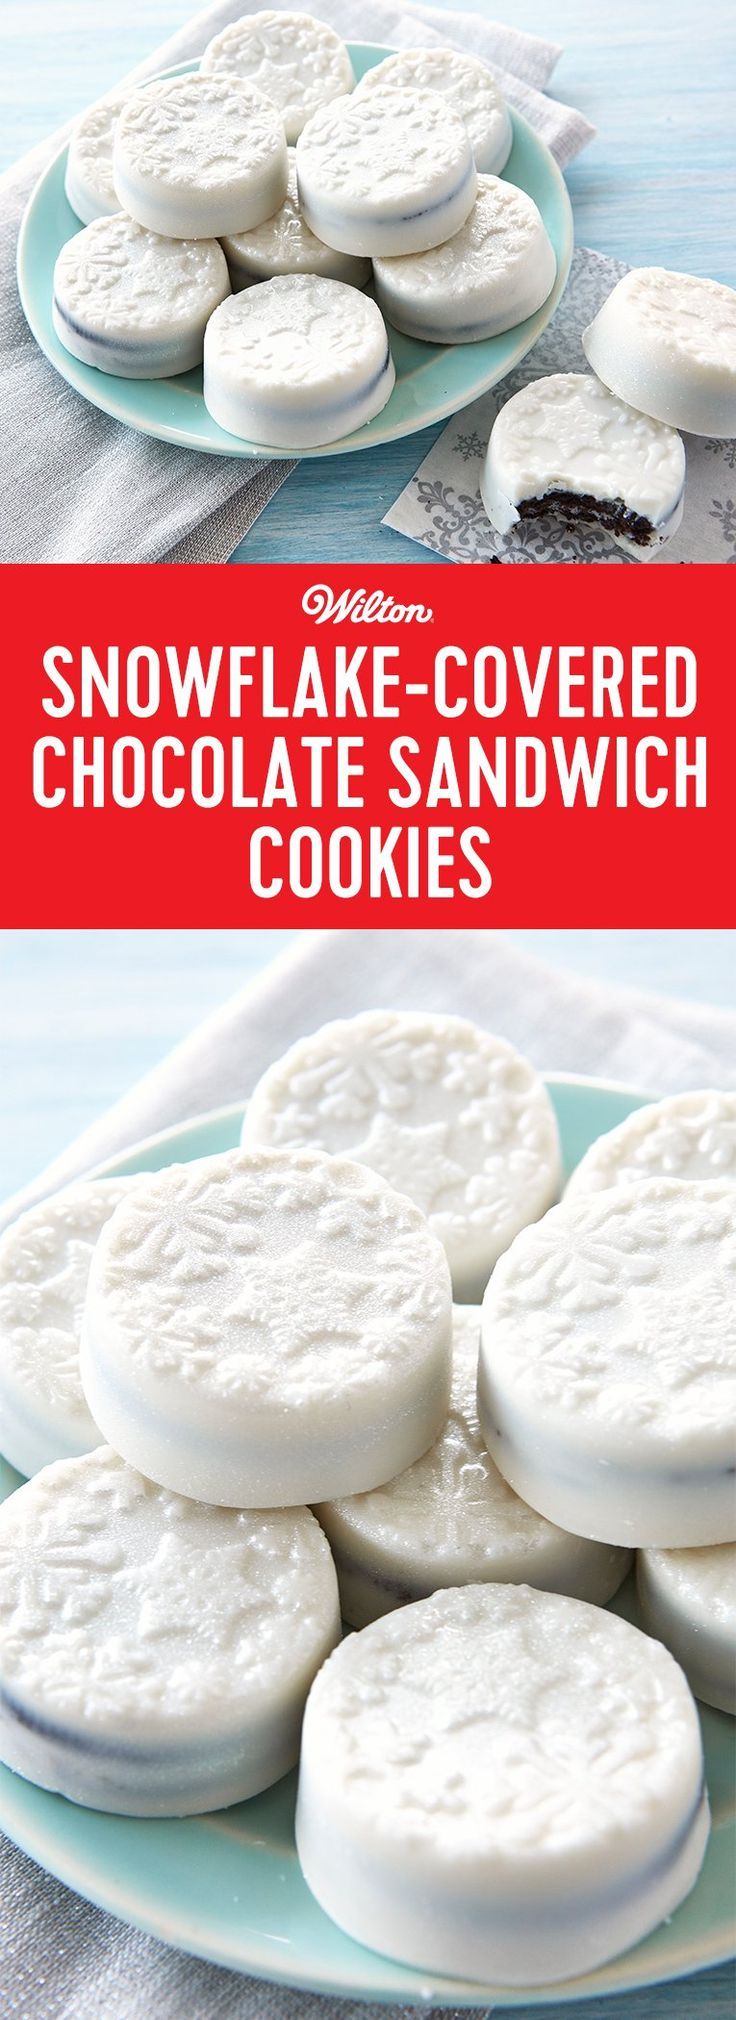 Snowflake Covered Chocolate Sandwich Cookies - What's sweeter than seeing the first snowfall of the season? These sparkling candy-coated treats with embossed snowflakes made with Candy Melts® candy and store-bought chocolate sandwich cookies. A touch of edible silver glitter spray was added to make them glisten just like a fresh blanket of holiday snow. Makes 12 cookies. #christmascookies #snowflakes #wiltoncakes